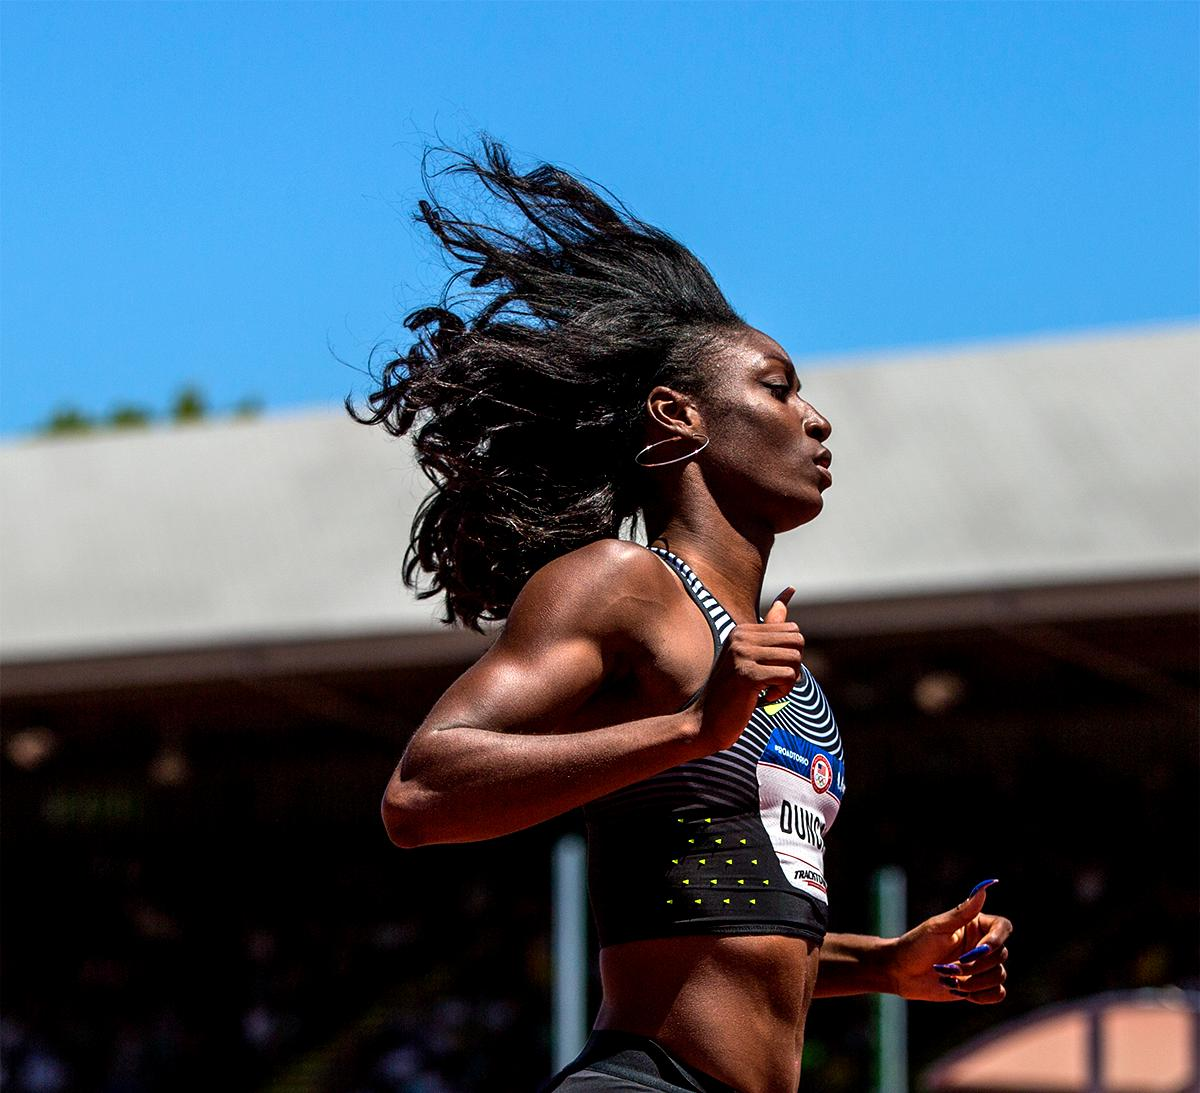 Nike's Kimberlyn Duncan's hair was flying high as she finished the 100 meters. Photo by August Frank, Oregon News Lab